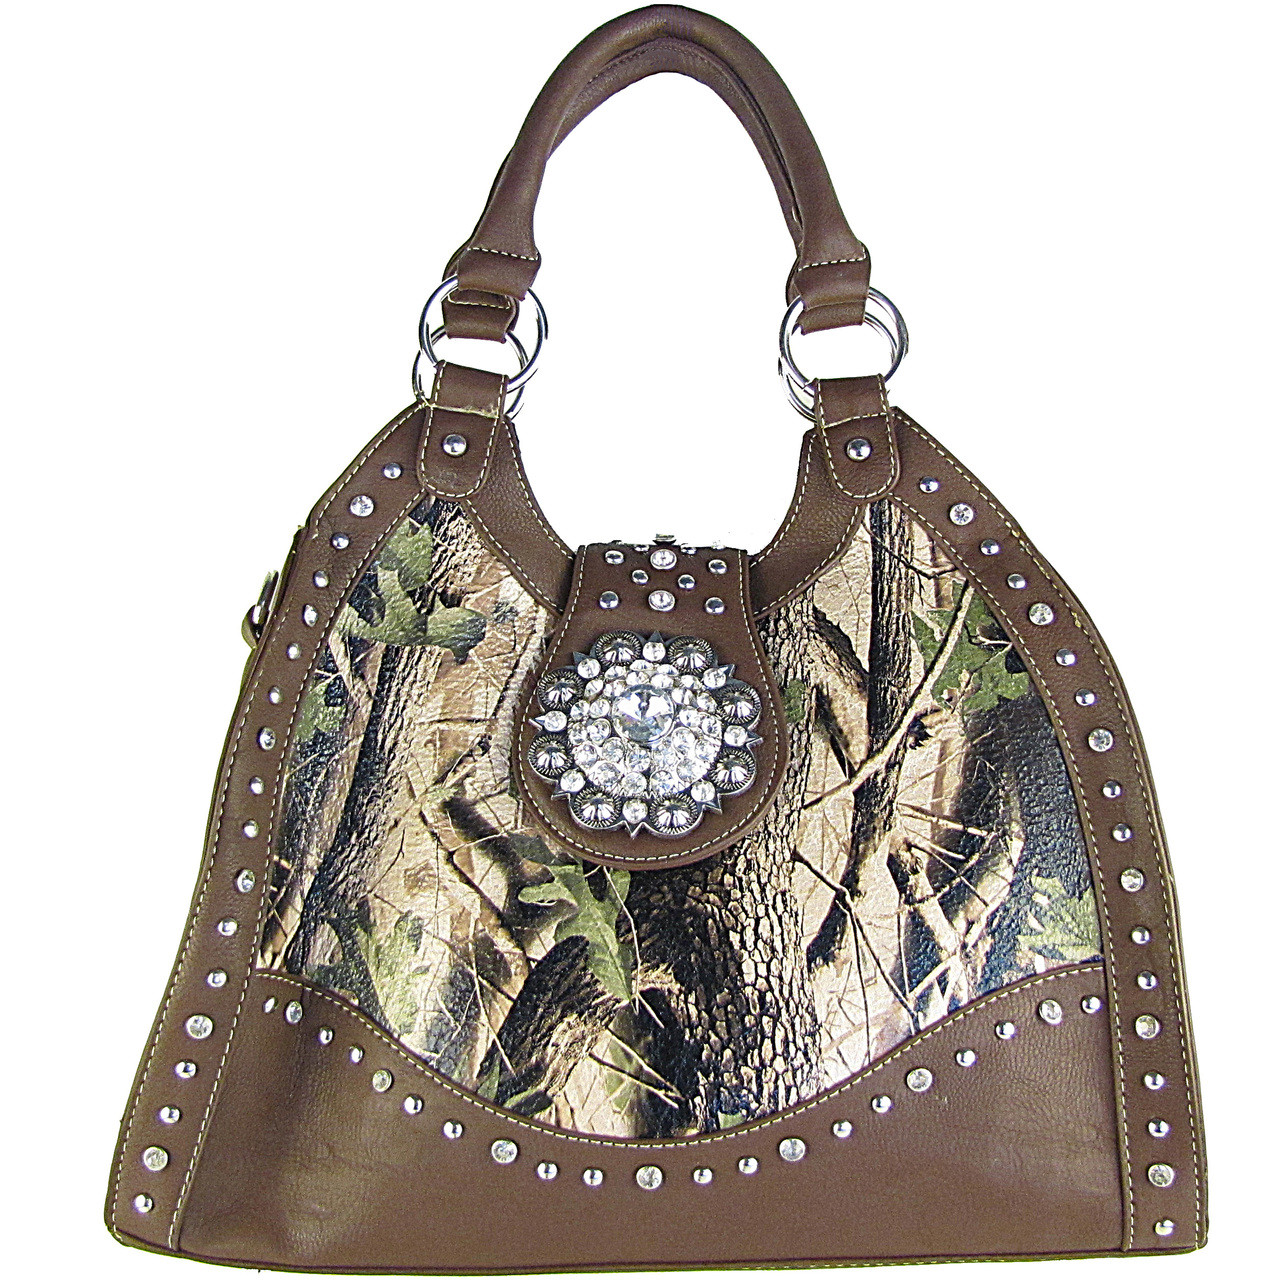 BROWN MOSSY CAMO RHINESTONE FLOWER BUCKLE LOOK SHOULDER HANDBAG HB1-CHF1020BRN